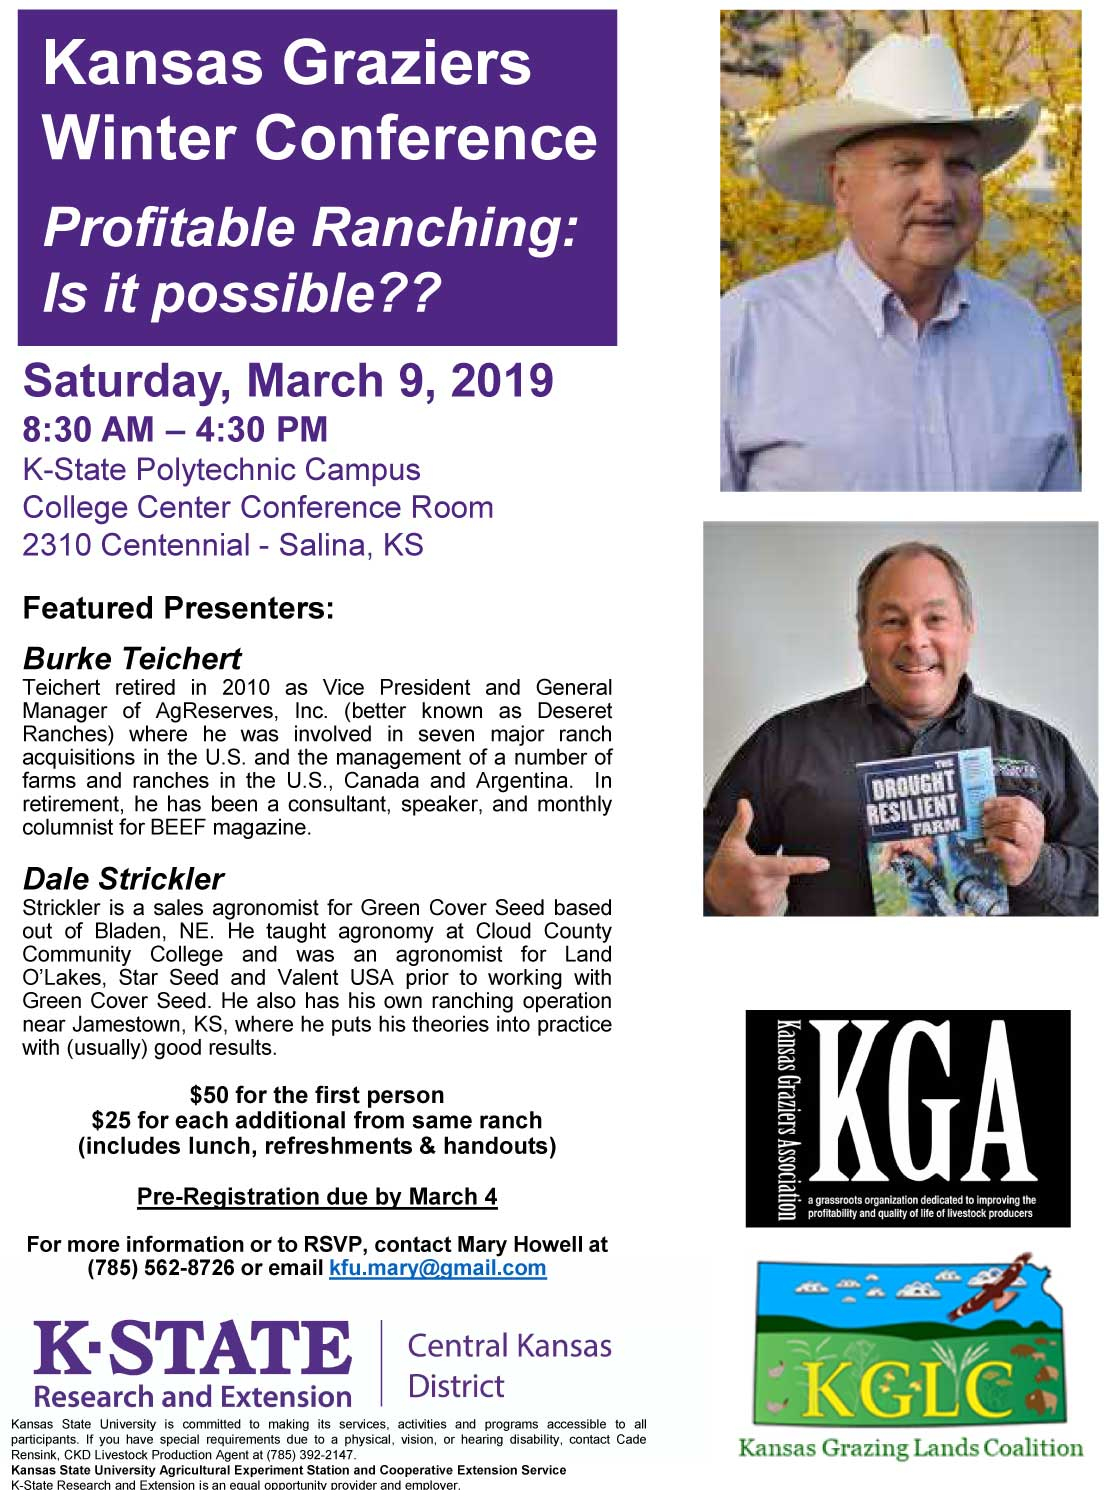 """Profitable Ranching: Is It Possible? The Answer is Yes!"" Kansas Winter Graziers Conference to be Held March 9th in Salina."